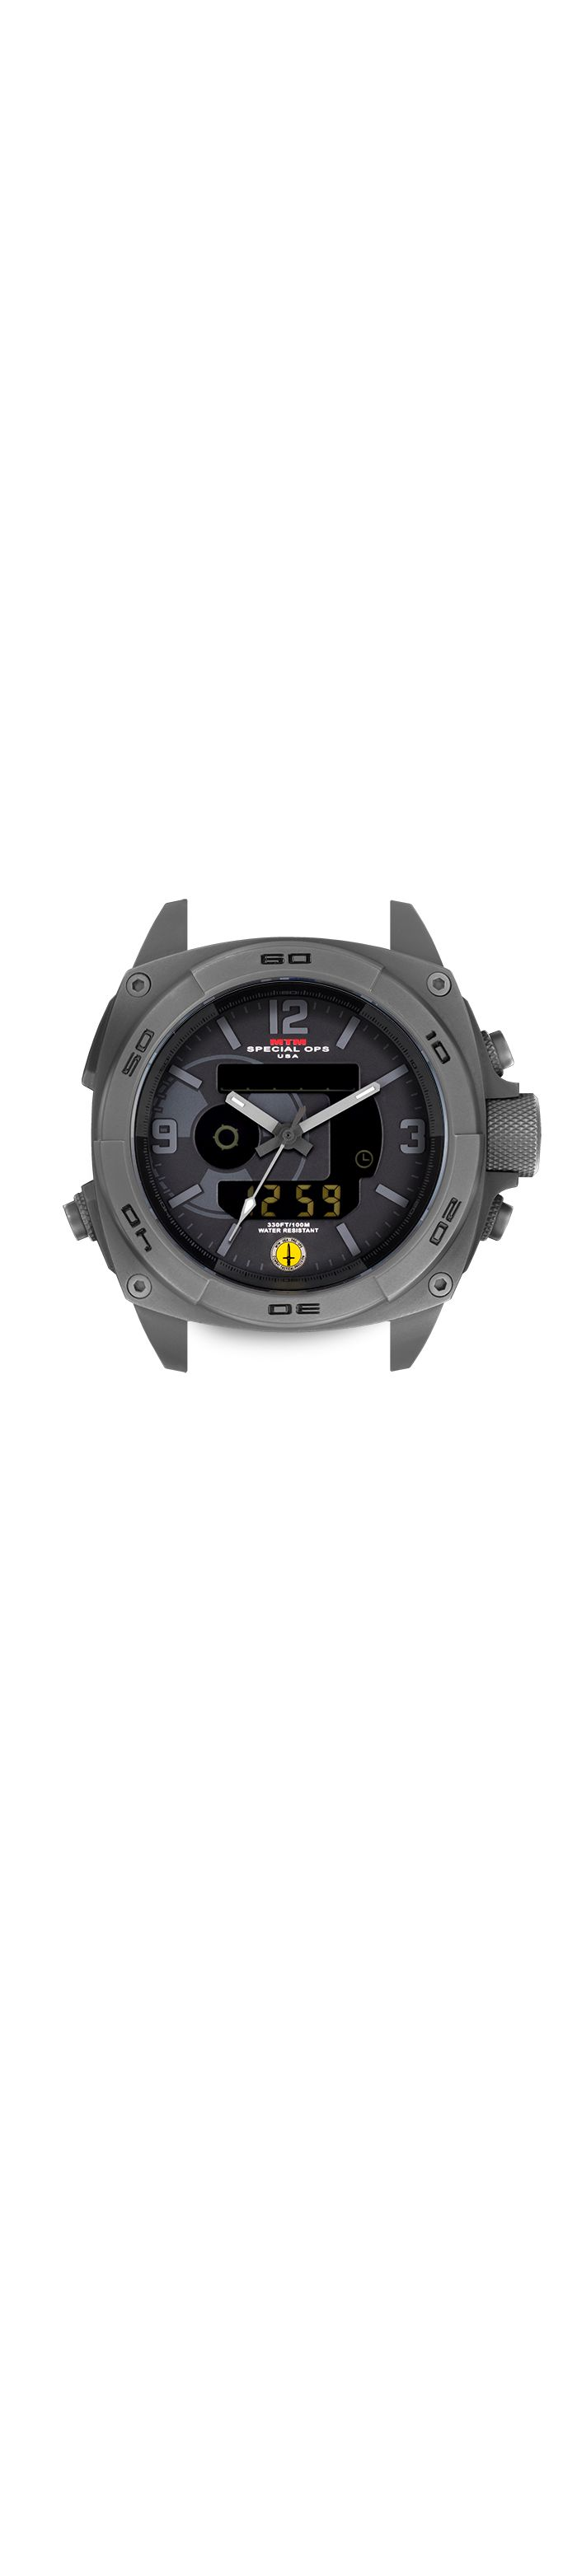 Radiation Watch | Gray RAD | MTM Special Ops Watches